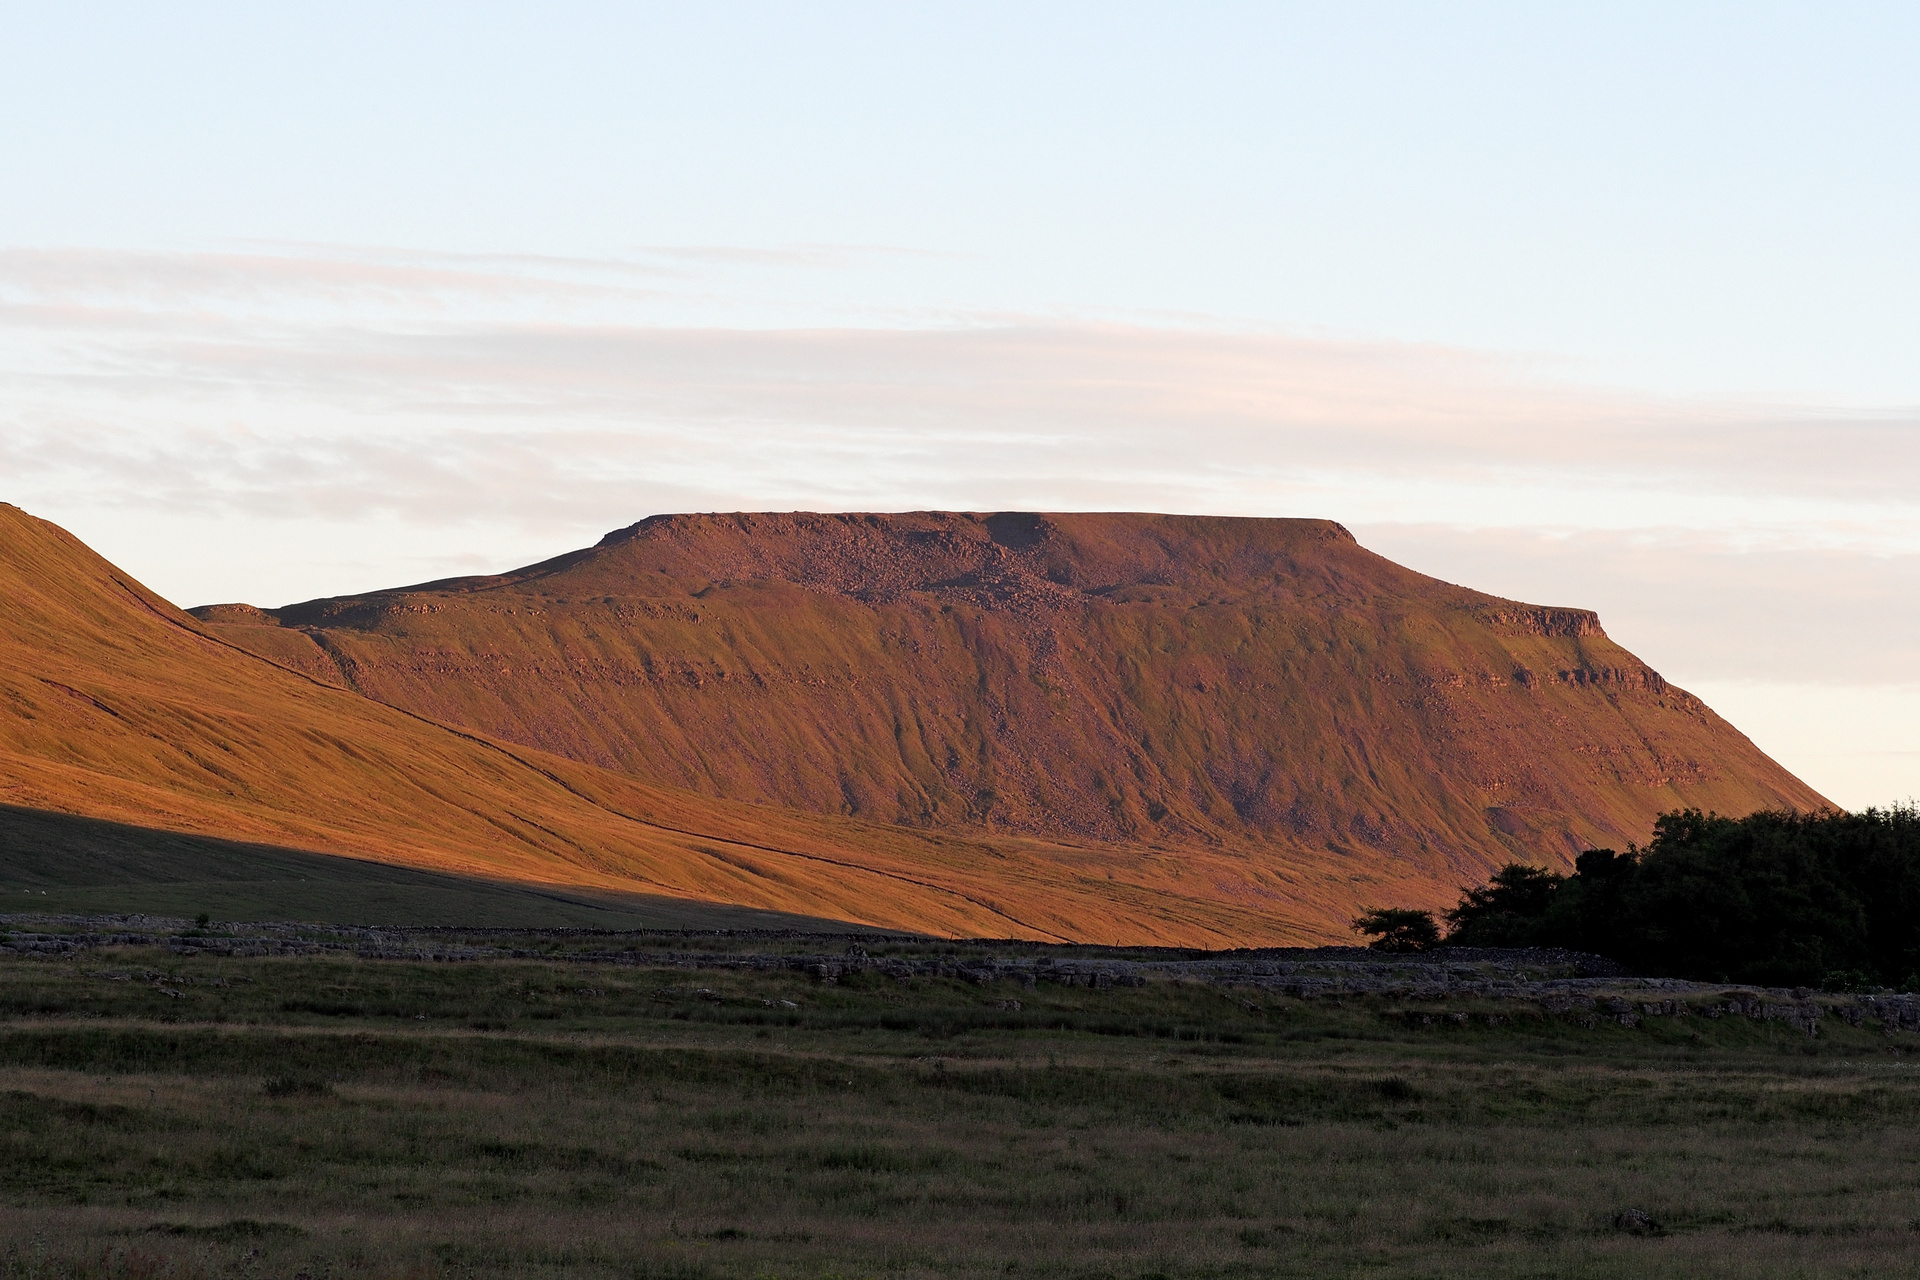 2018-07-03; England, Yorkshire; Yorkshire Dales; Table mountain; Evening; Soft light; Before sunset; Dry; Jan Ciglbauer Photo